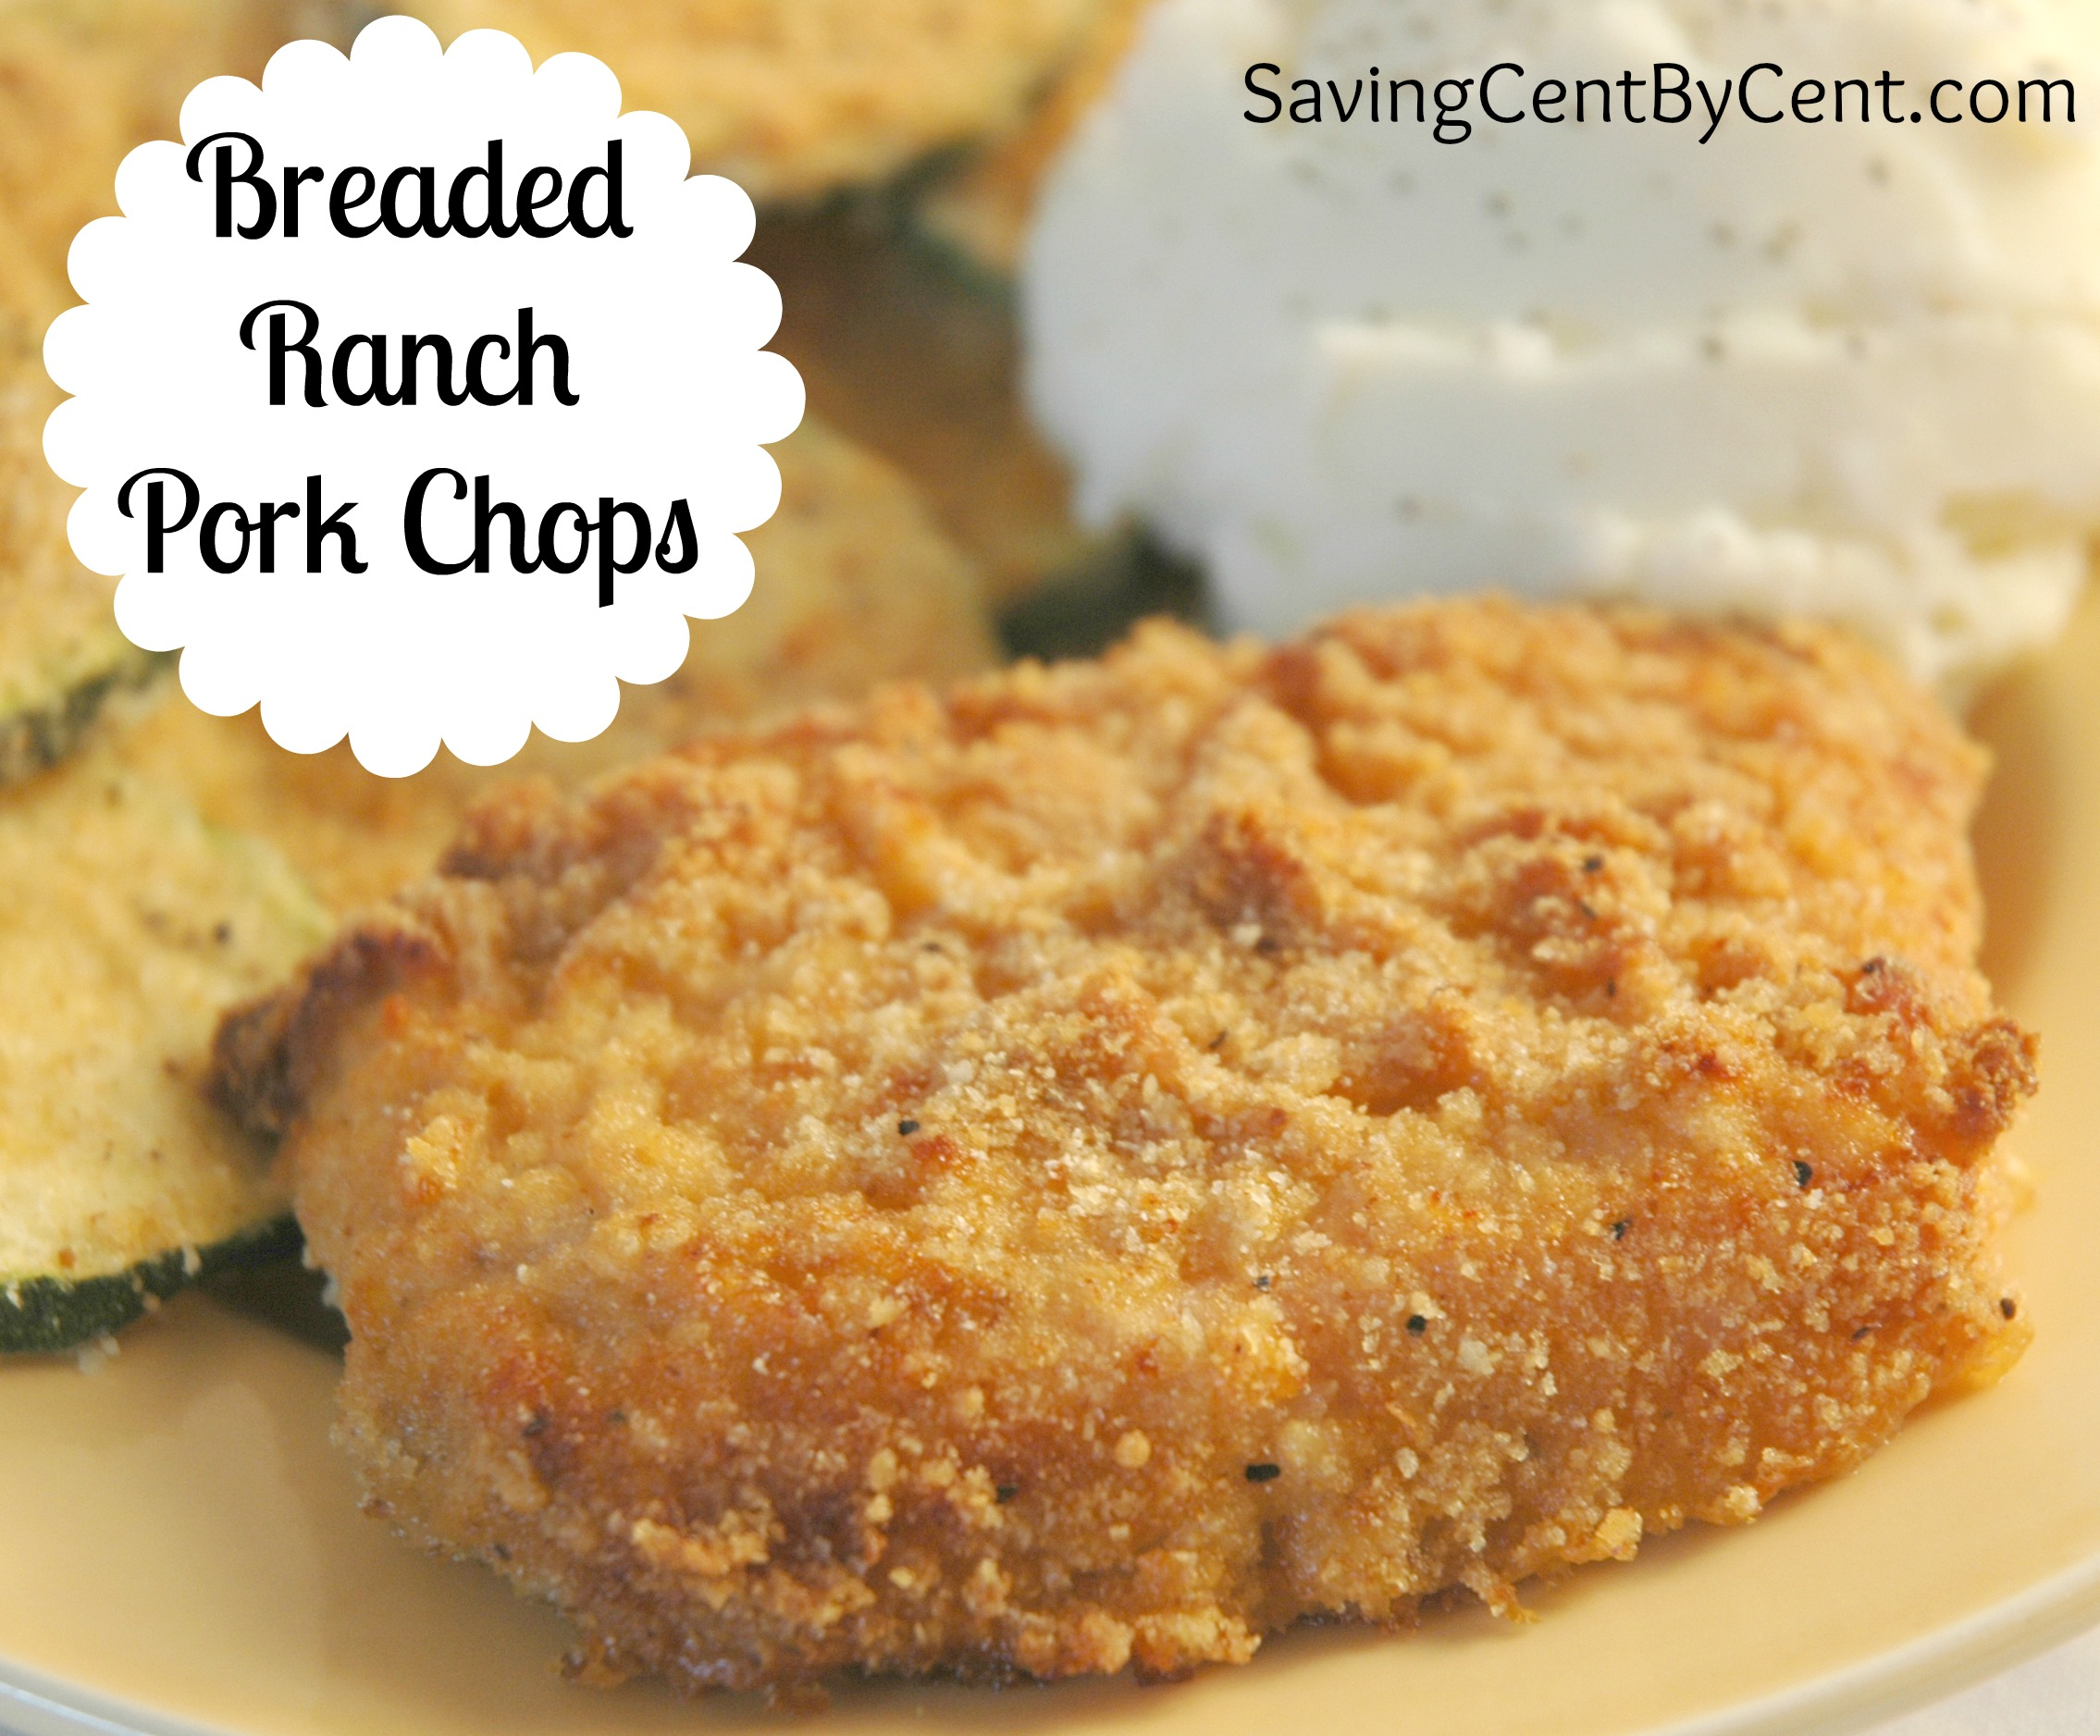 Breaded Ranch Pork Chops